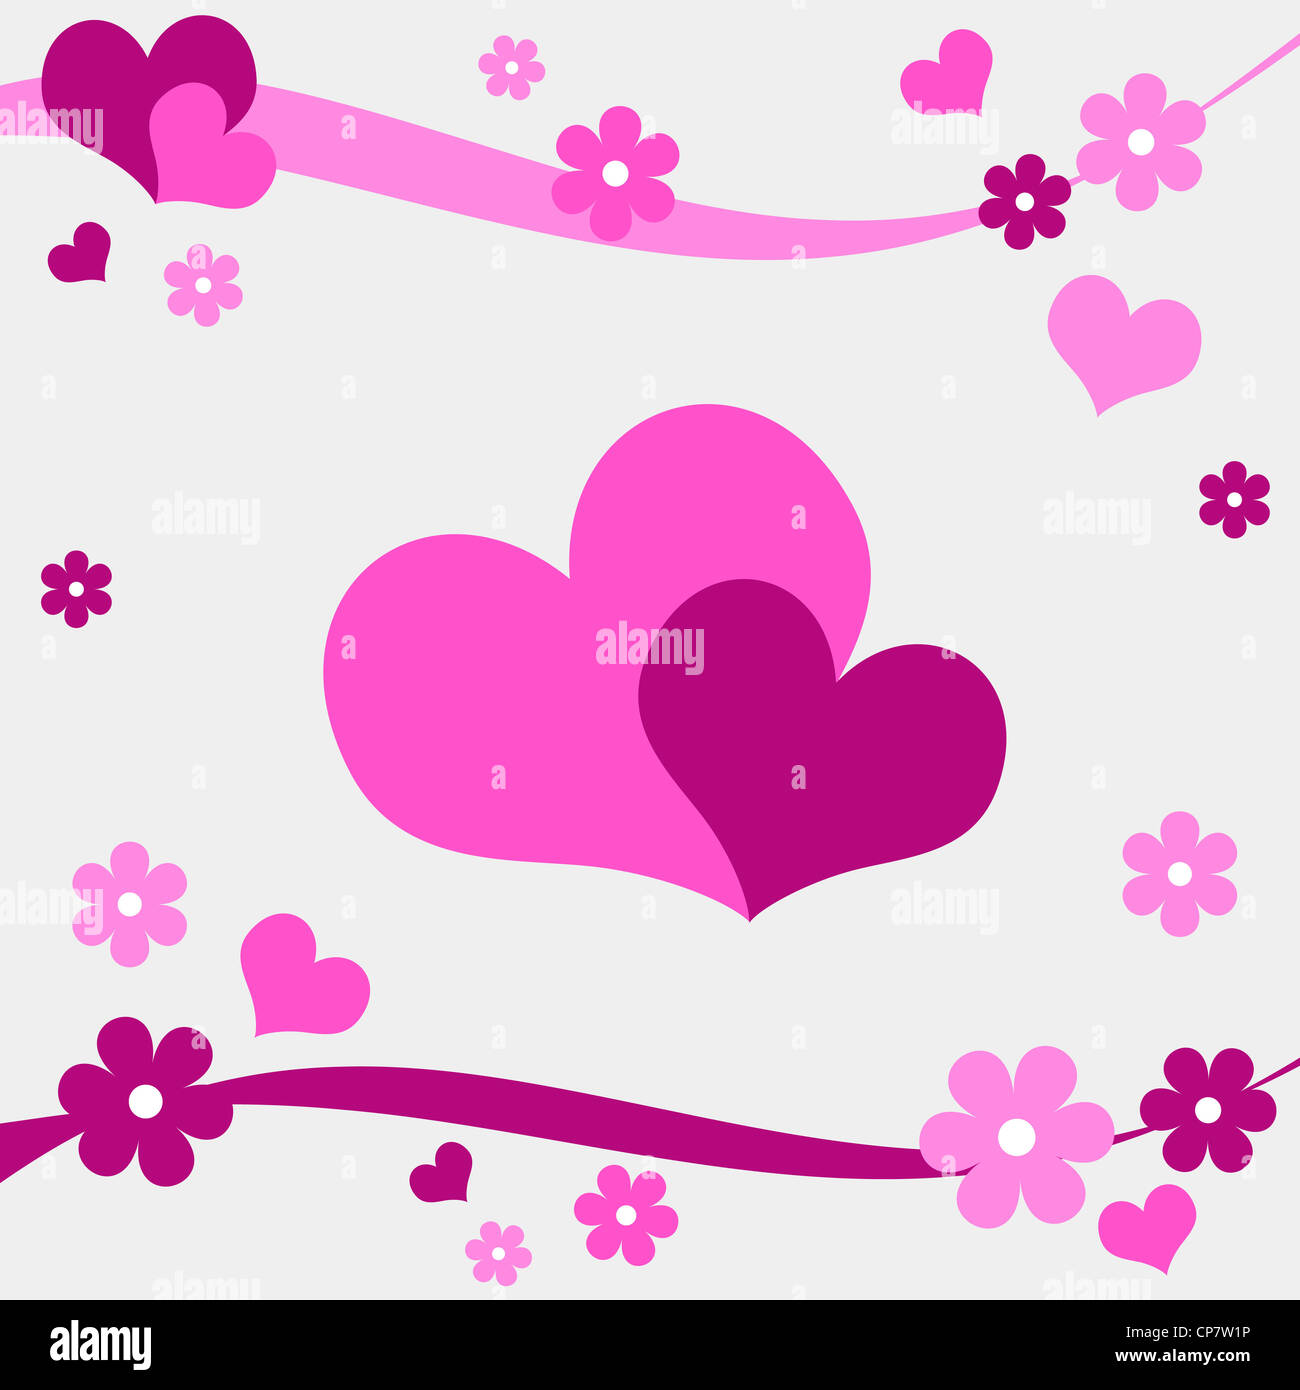 Hearts and flowers design in pink Stock Photo